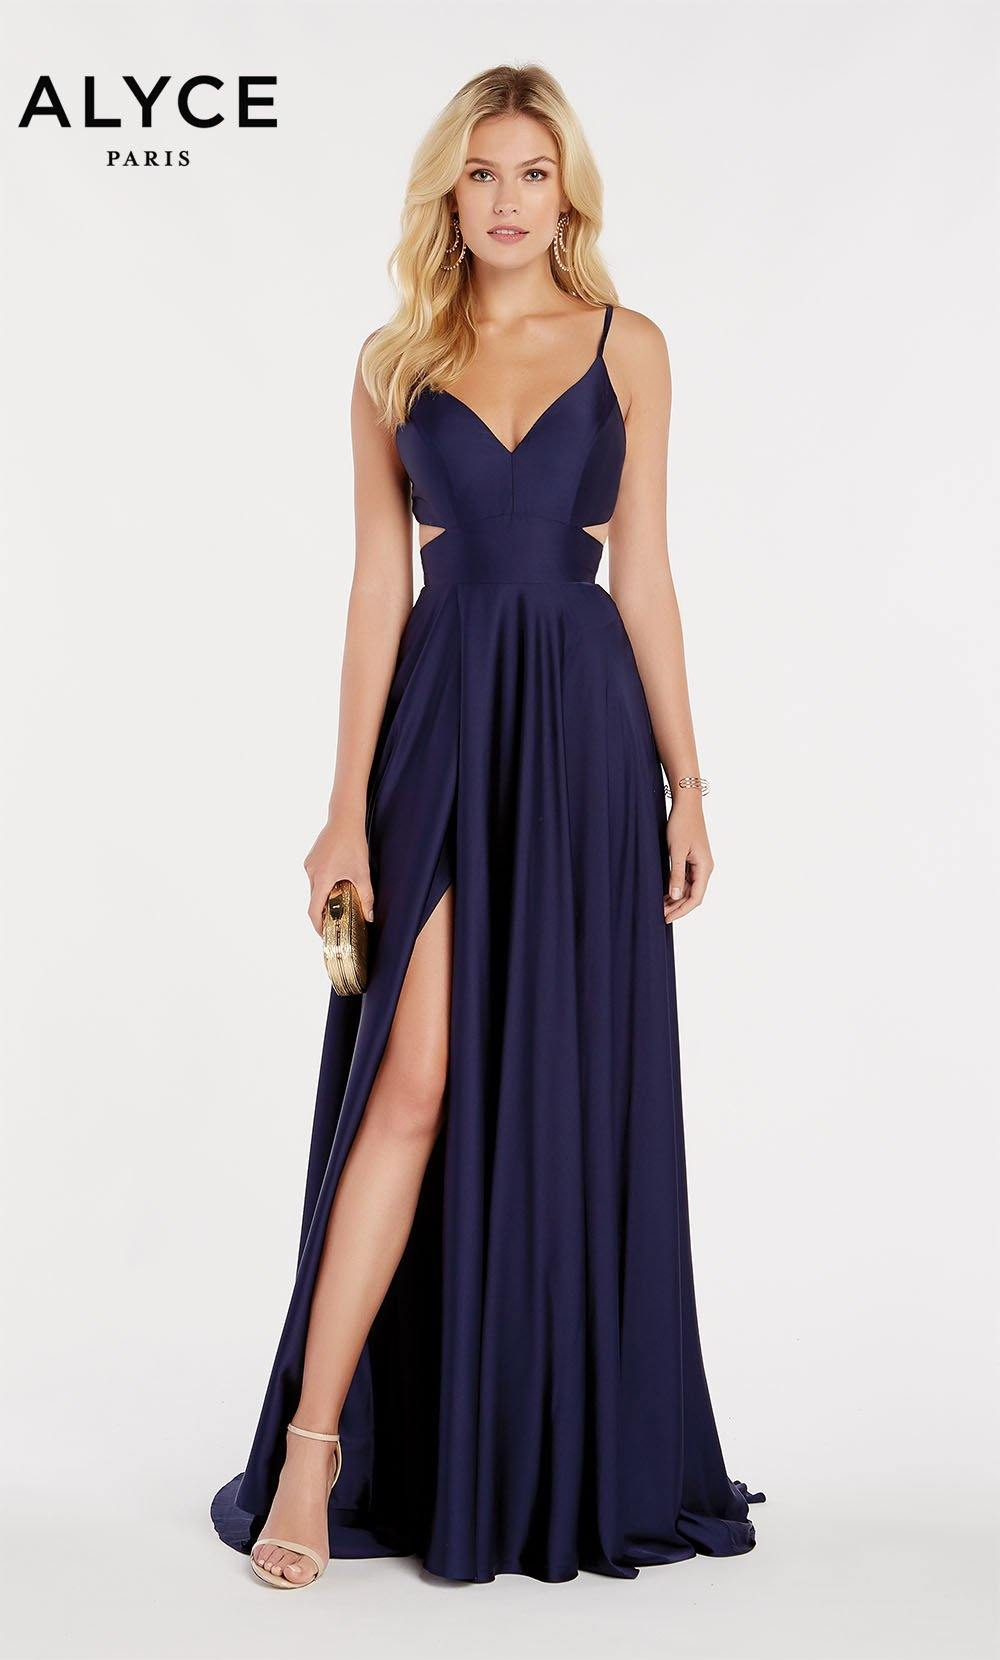 Midnight Blue flowy satin chiffon prom dress with a V neck, side cutouts, and front slit